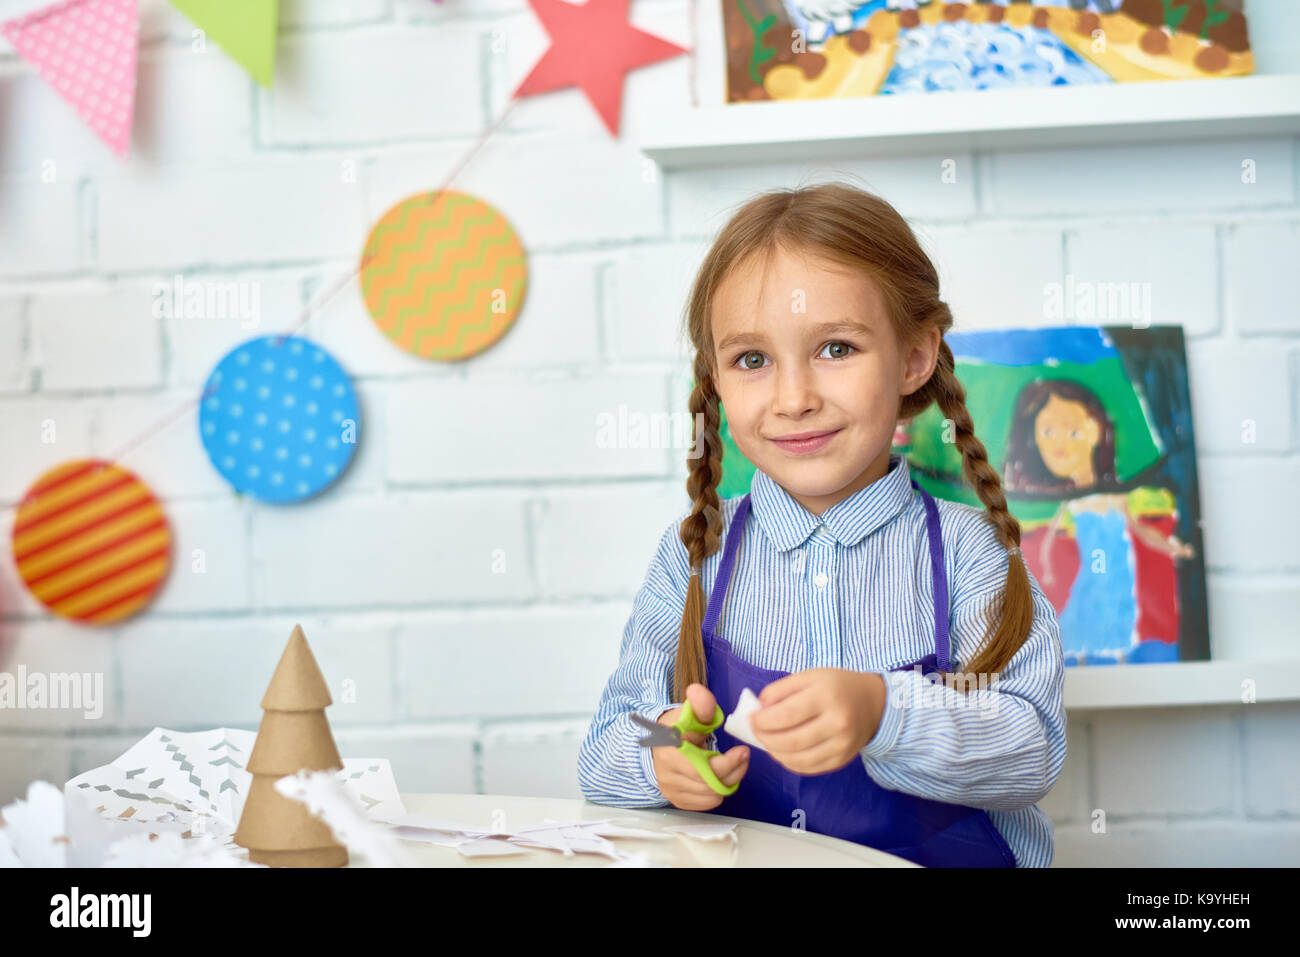 Portrait Of Pretty Little Girl Smiling Happily At Camera While Making Handmade Christmas Decorations During Art And Craft Class Pre School Copy Sp